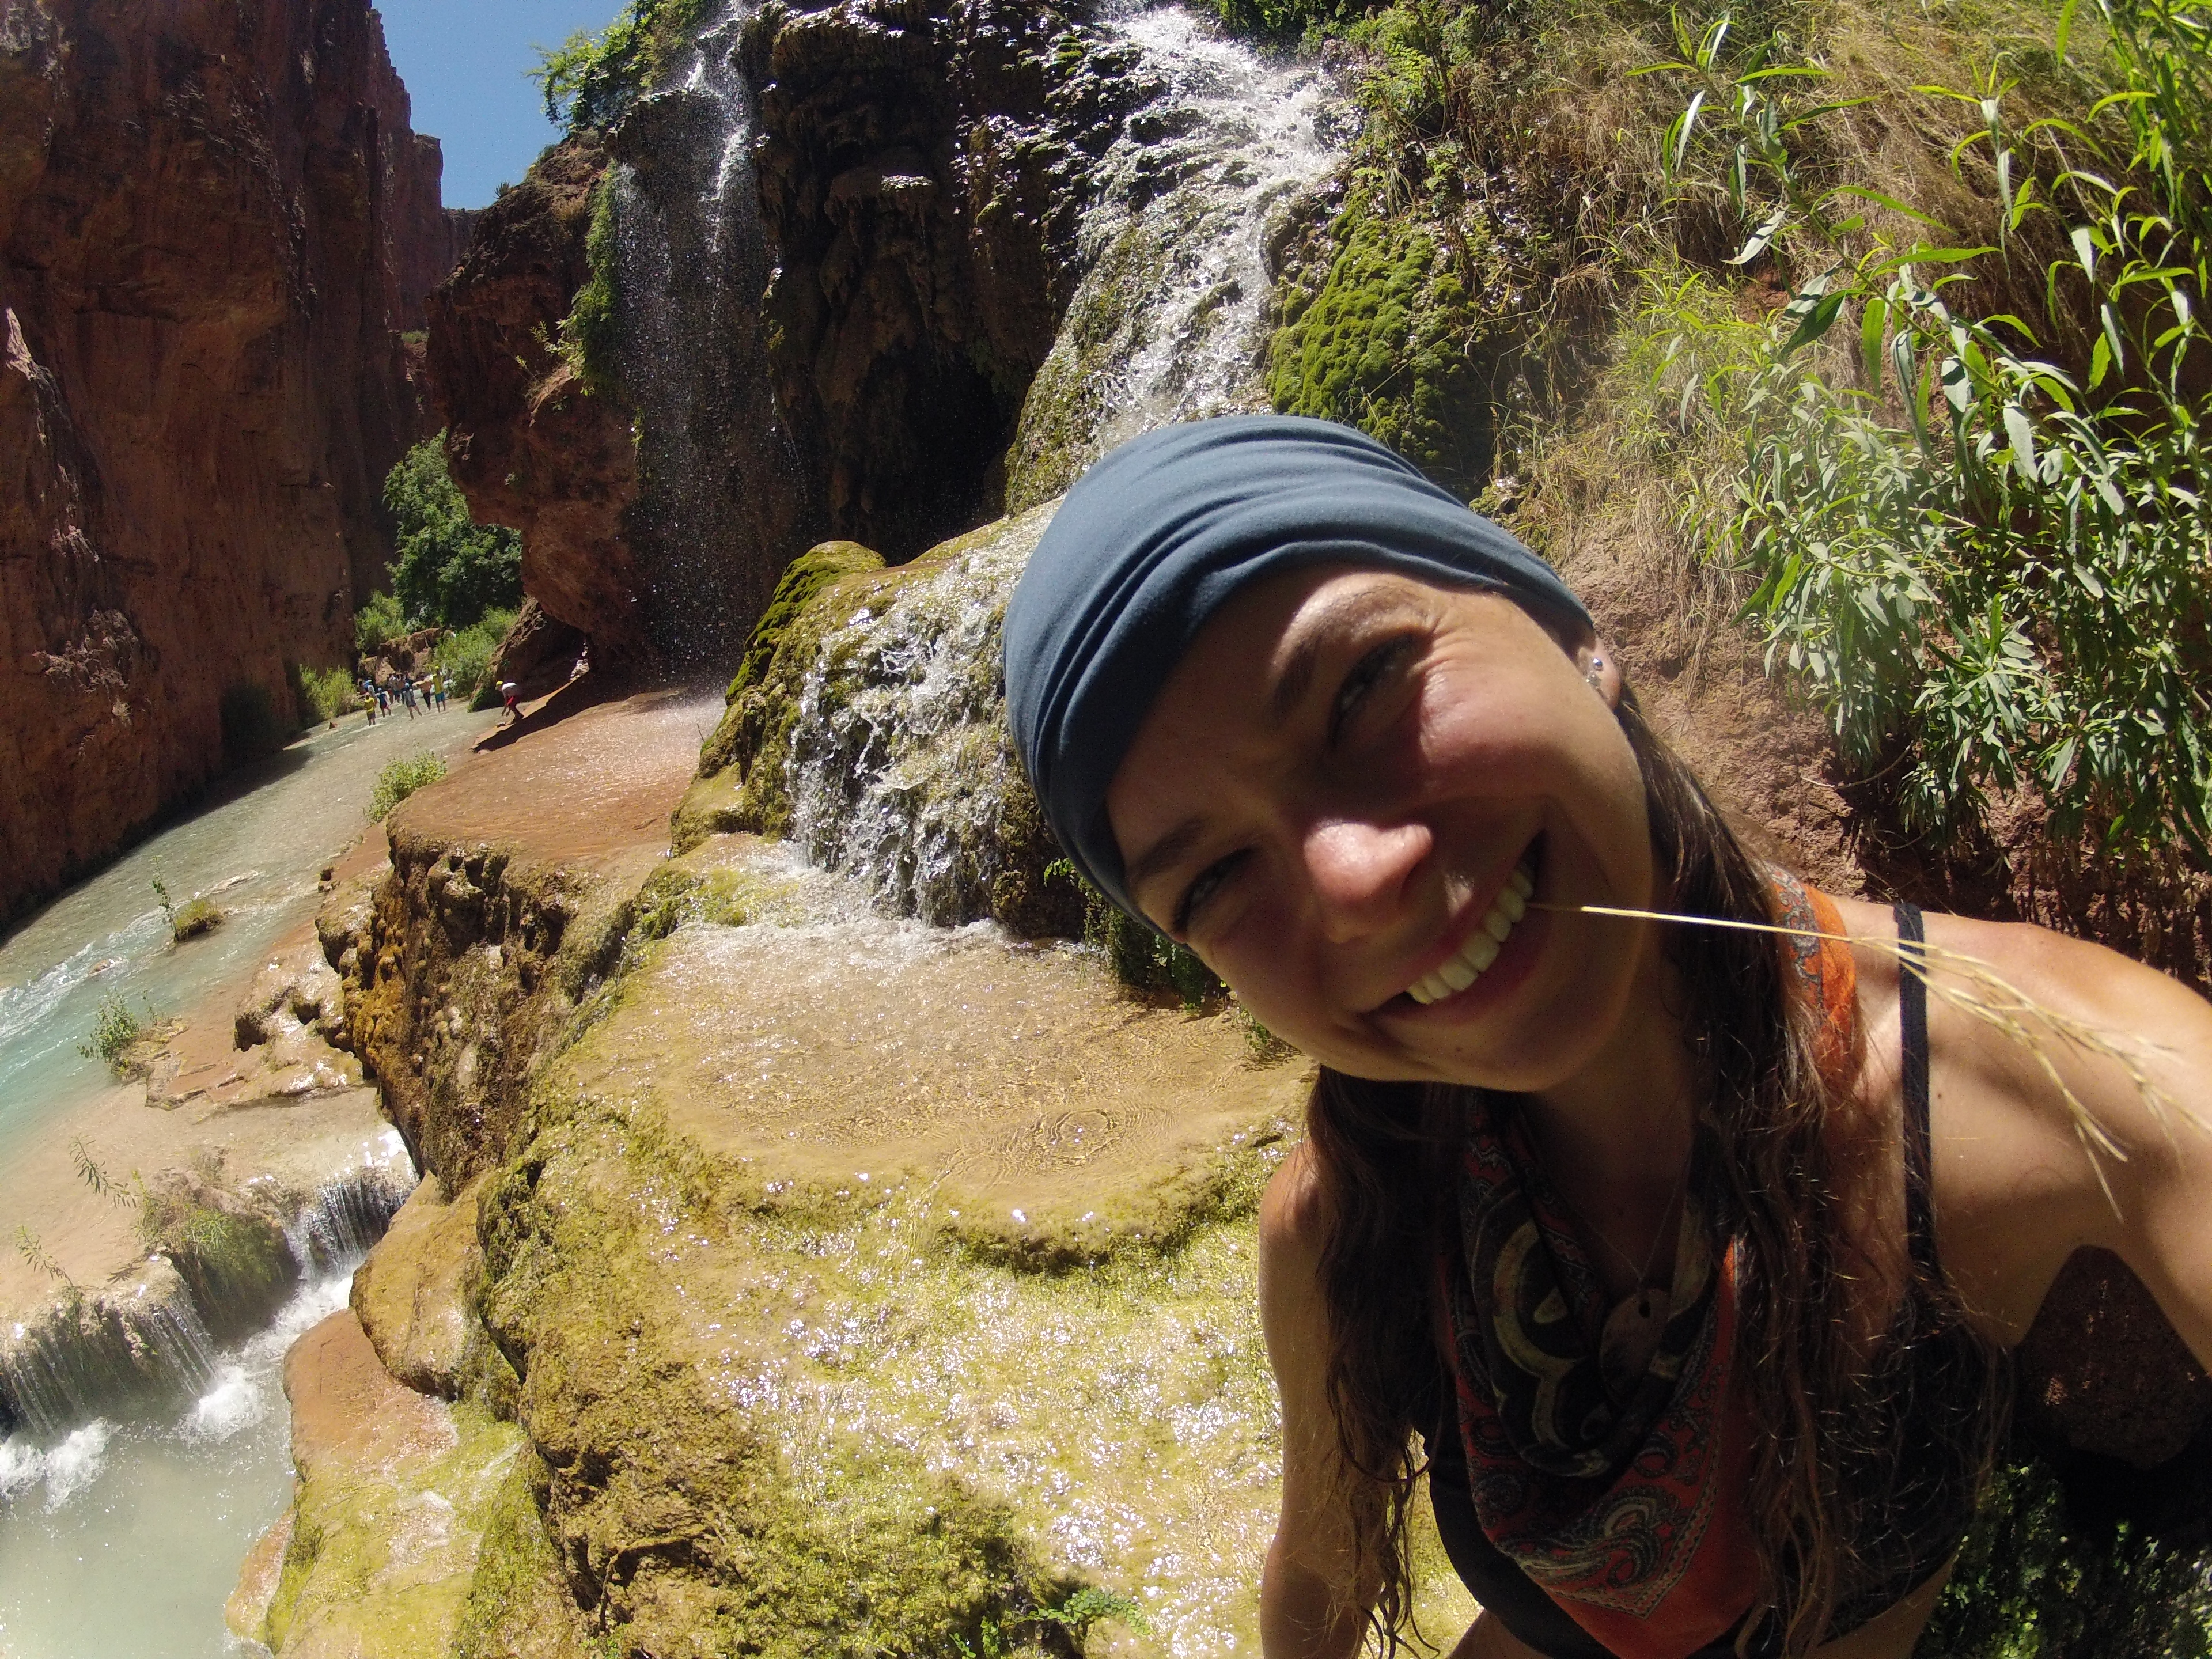 One of the first shots from my GoPro - taken during a hike down a waterfall near Mooney Falls in Arizona.